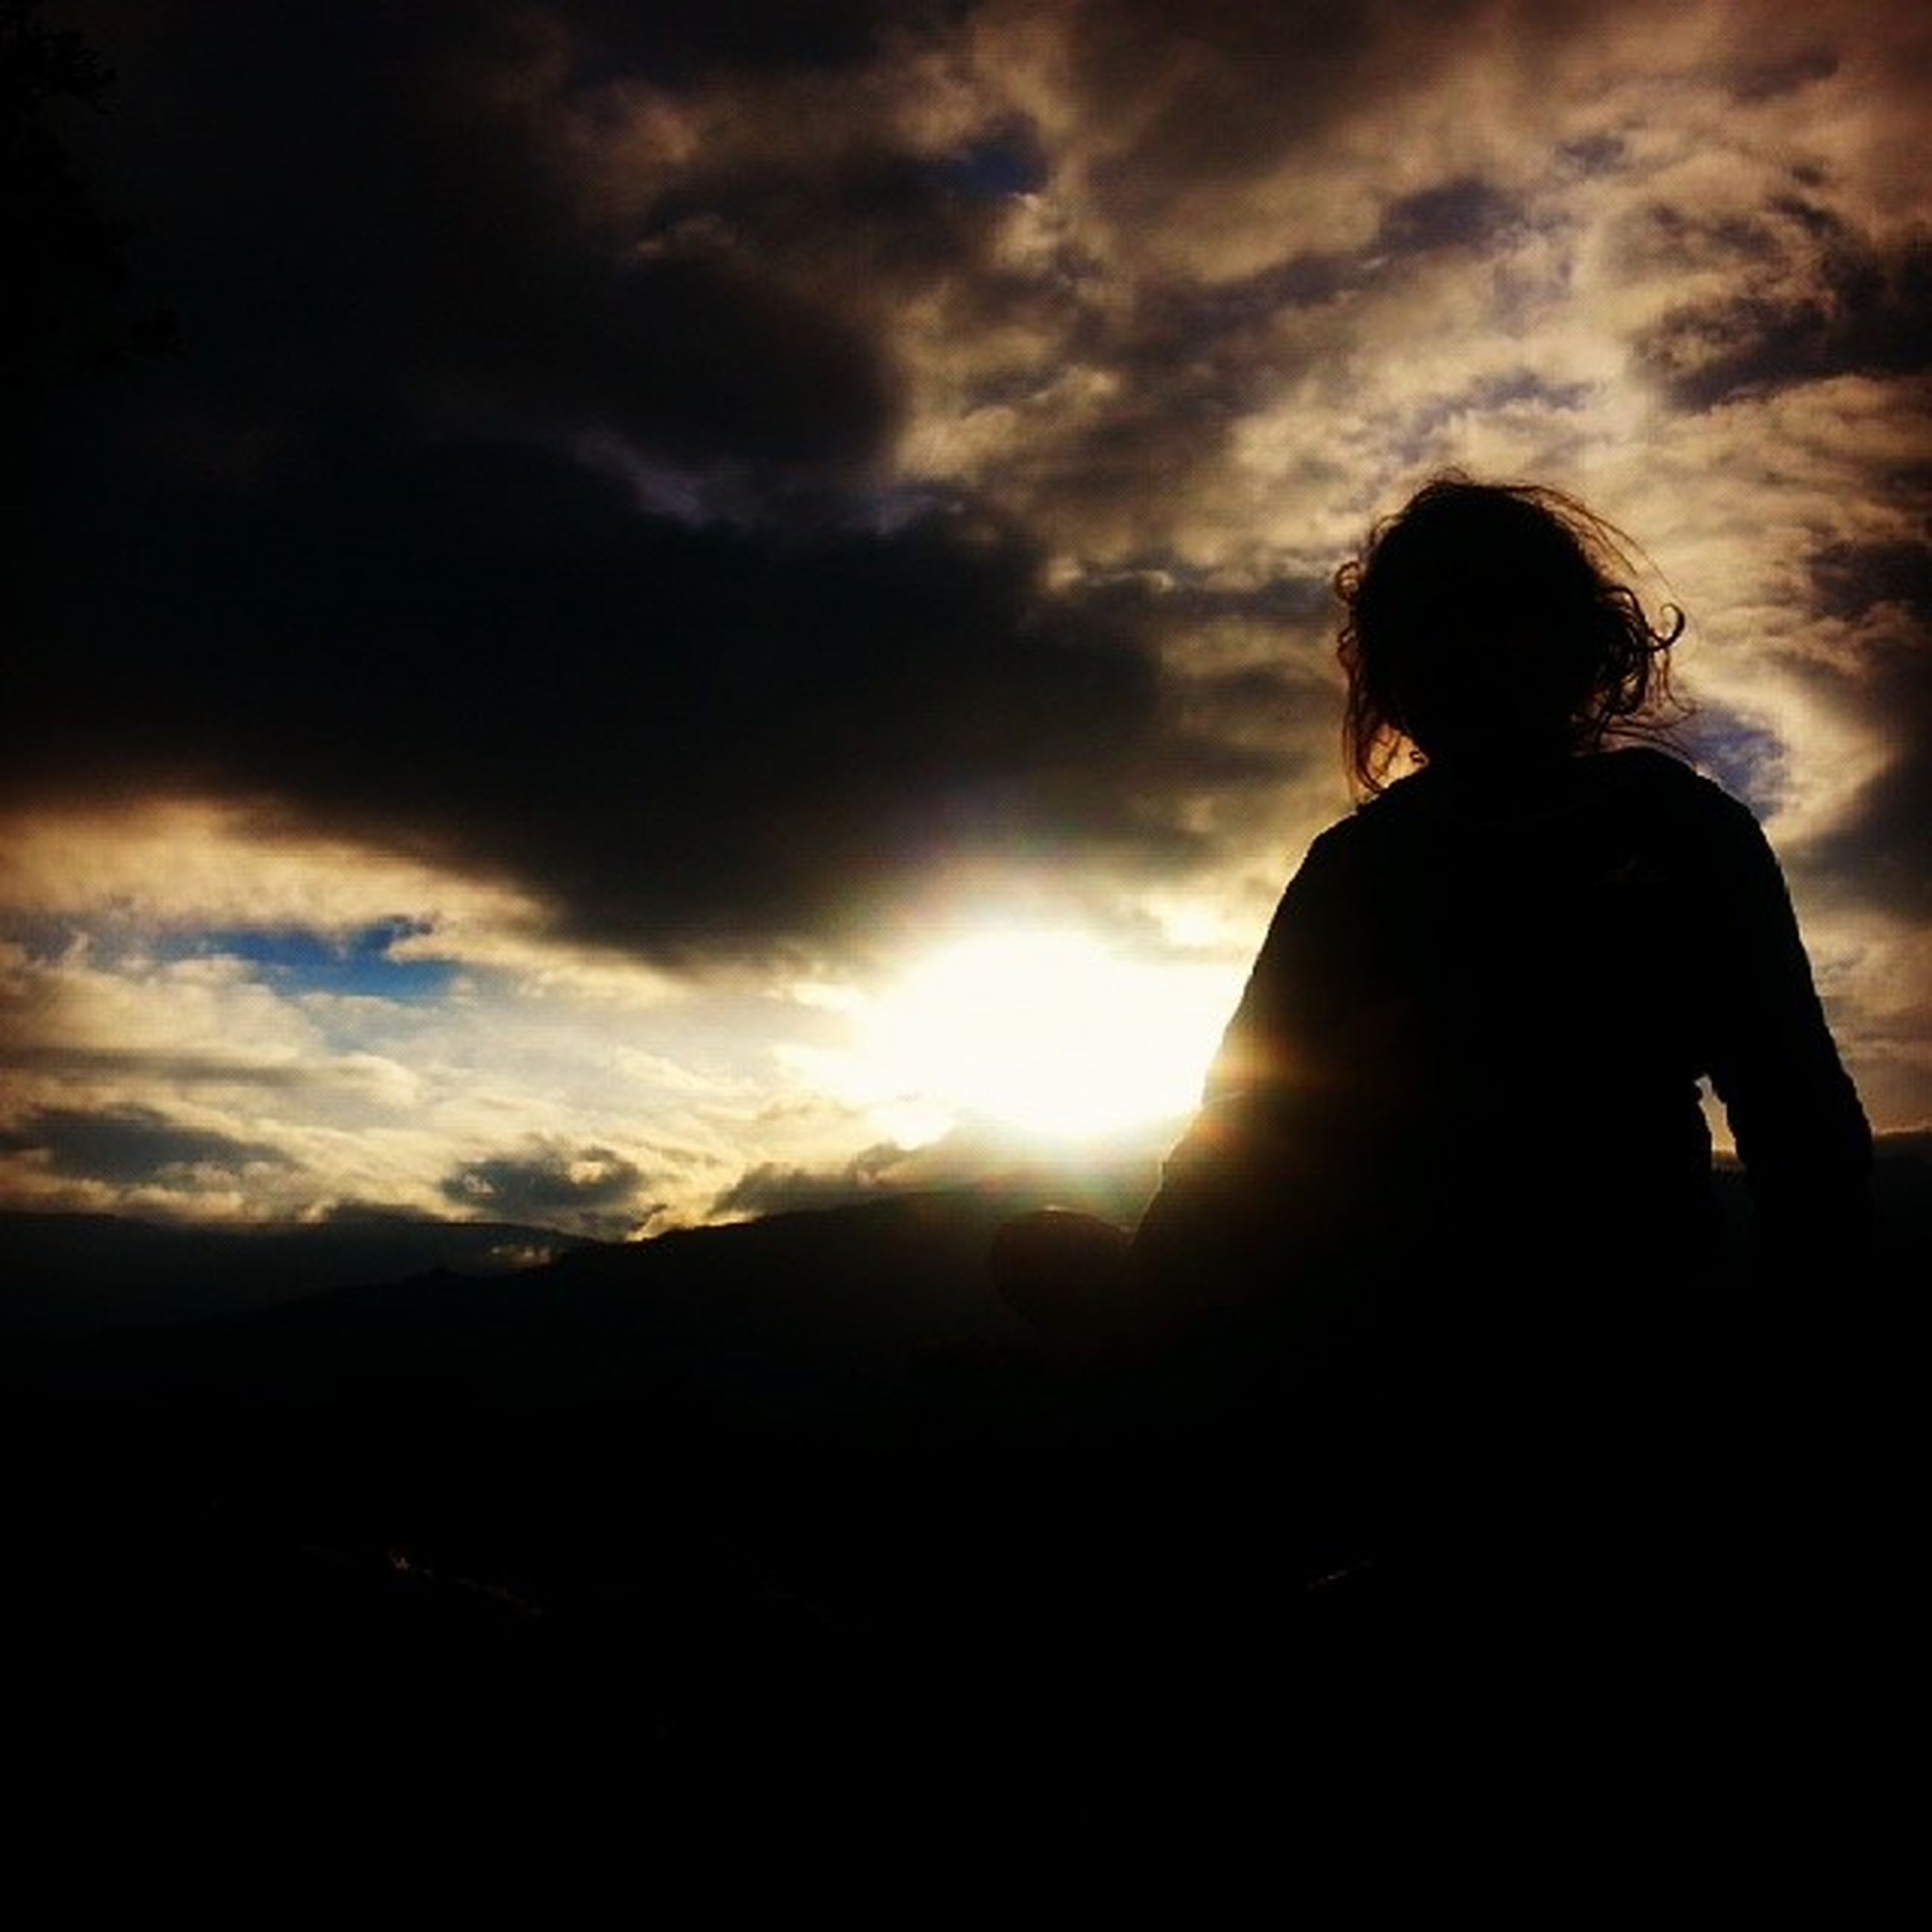 sky, silhouette, cloud - sky, lifestyles, leisure activity, sunset, rear view, cloudy, standing, tranquil scene, tranquility, scenics, beauty in nature, nature, cloud, sun, person, men